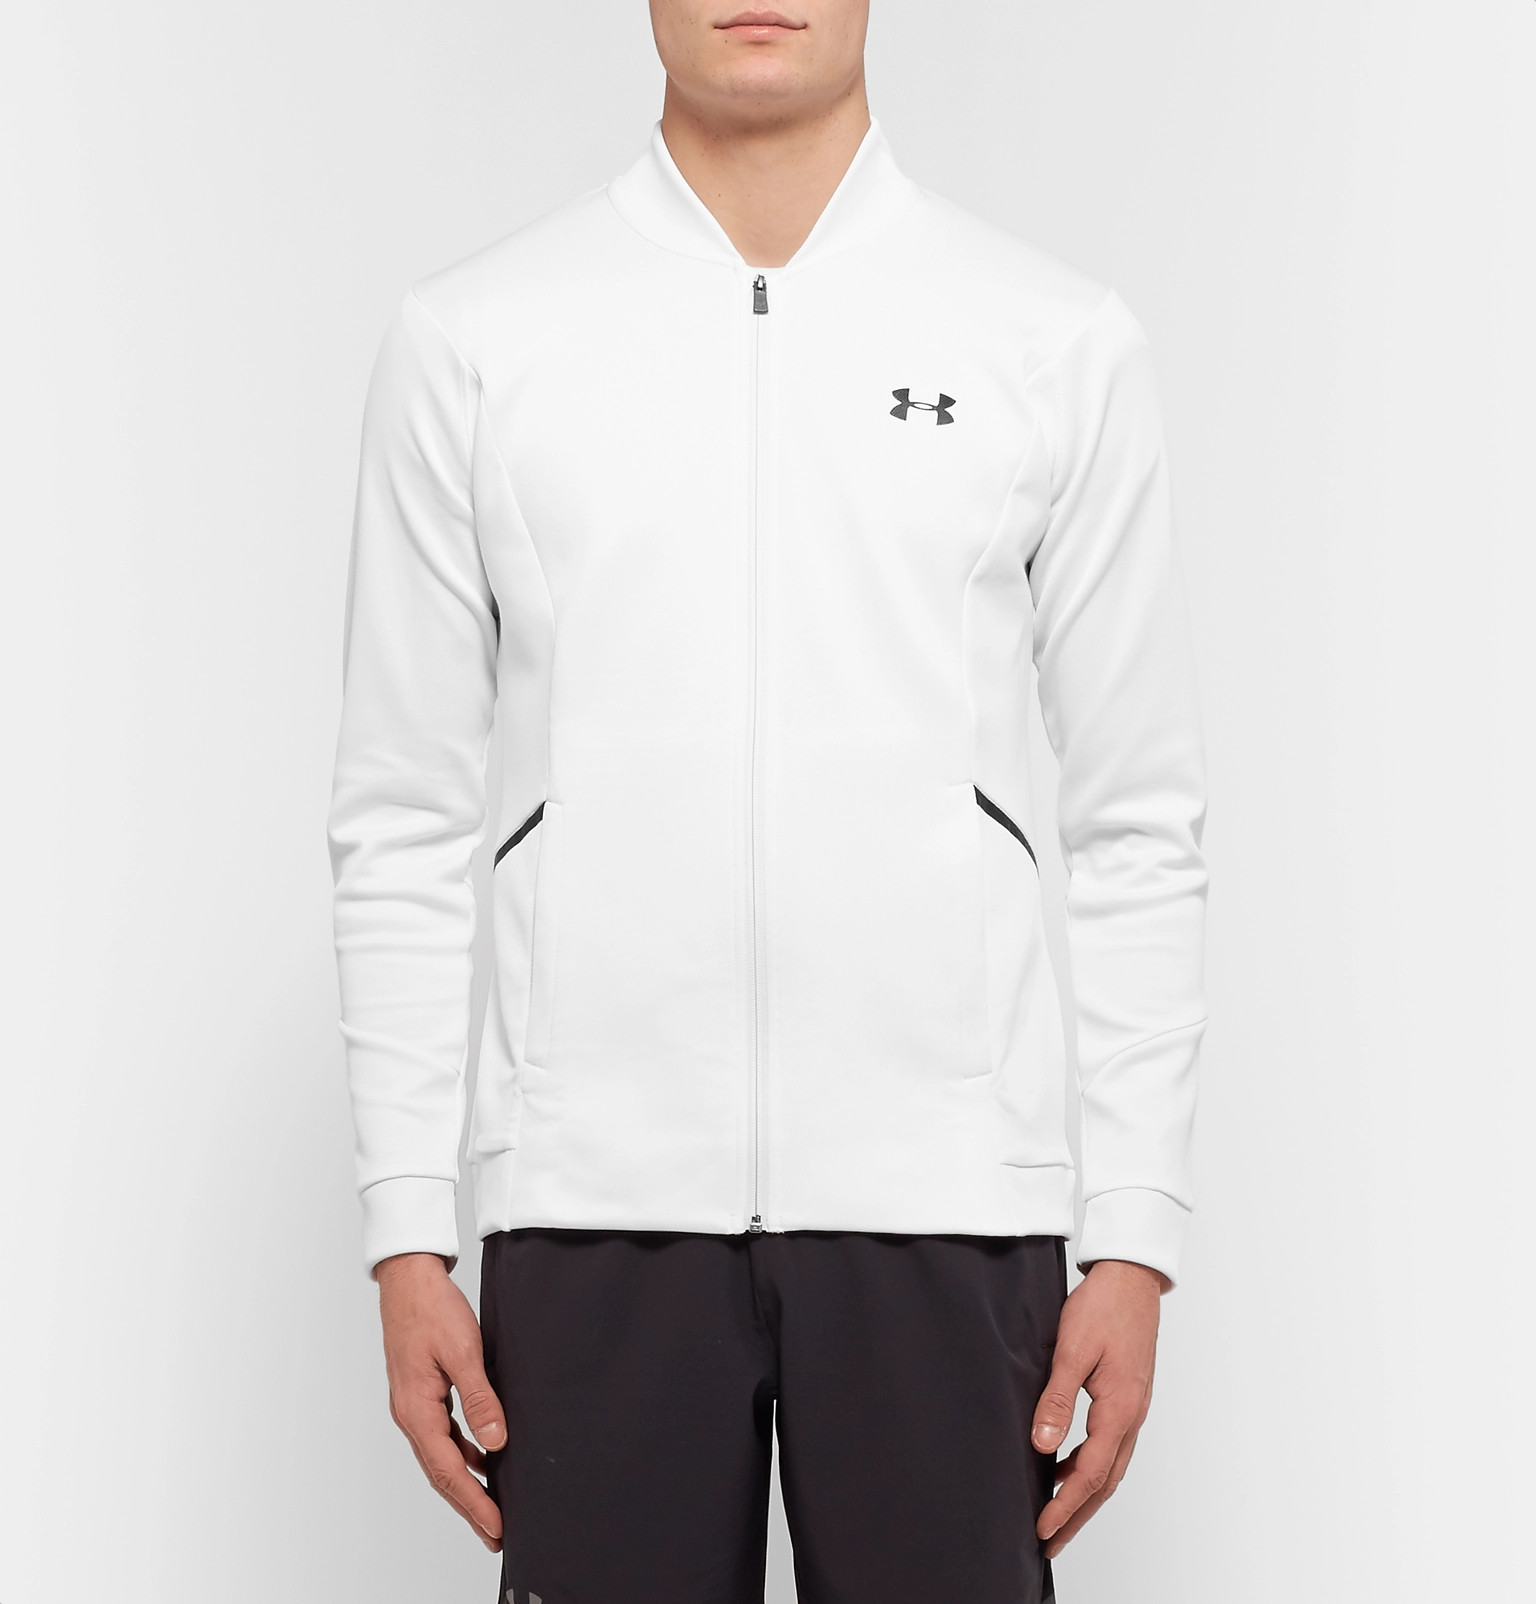 Panelled Jacket Tennis Piqué Jersey Under Armourforge Ef8pqPwSW